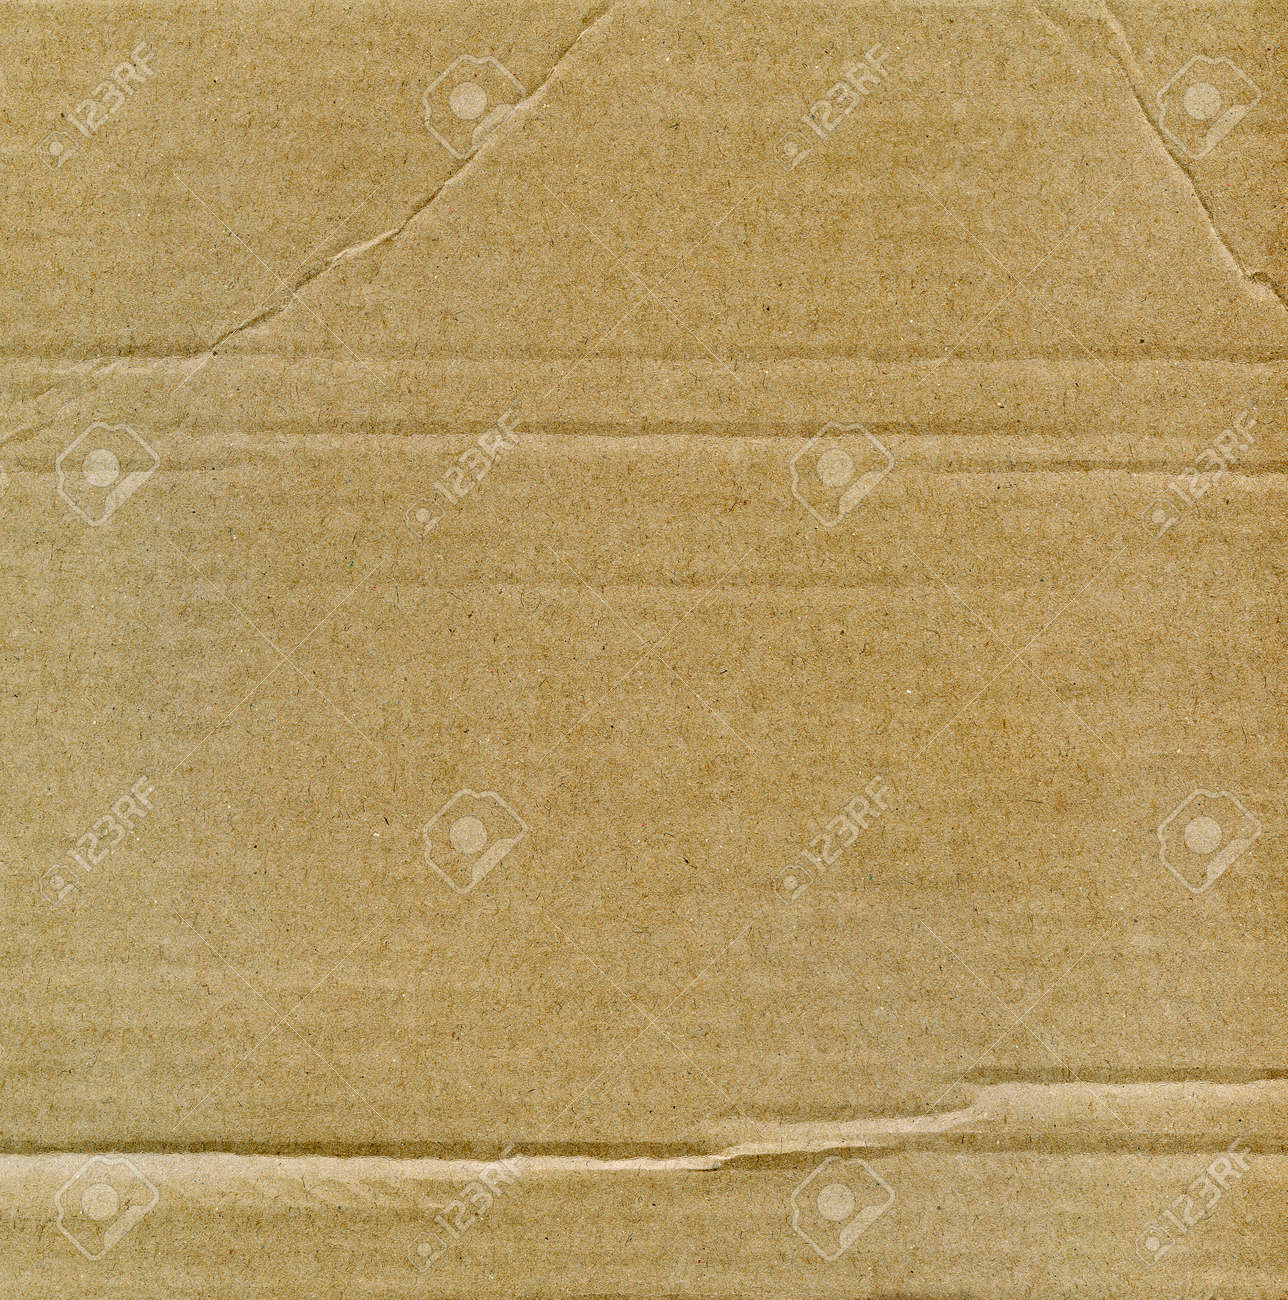 Textured recycled cardboard with natural fiber parts Stock Photo - 15840279